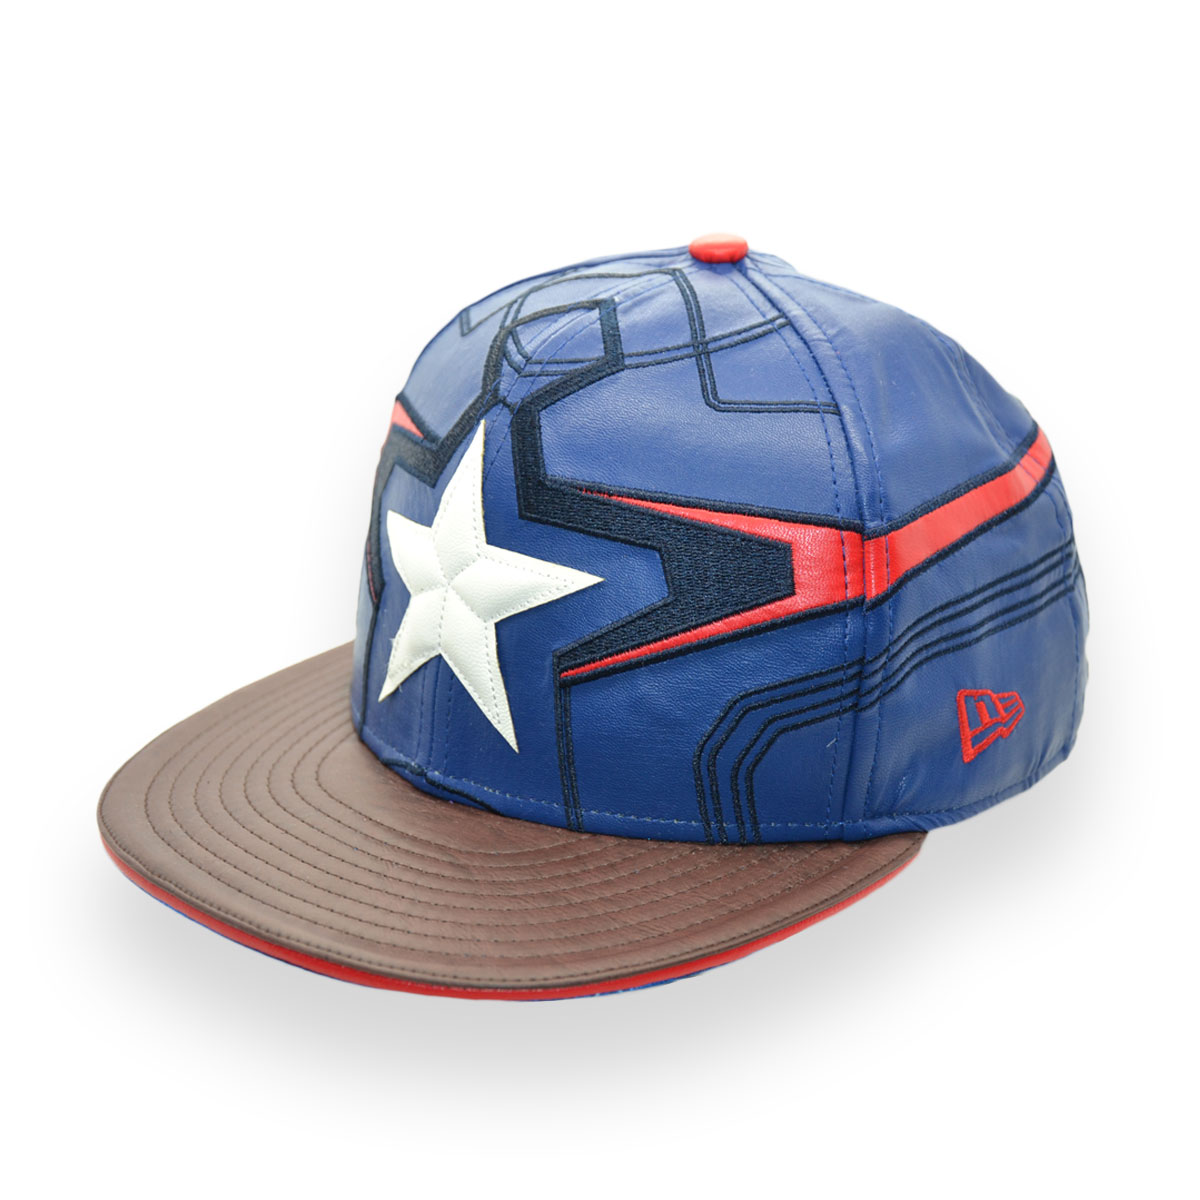 86fa29a5b5be8 NEW ERA AVENGERS AGE OF ULTRON MARVEL CAPTAIN AMERICA 59FIFTY CAP ...